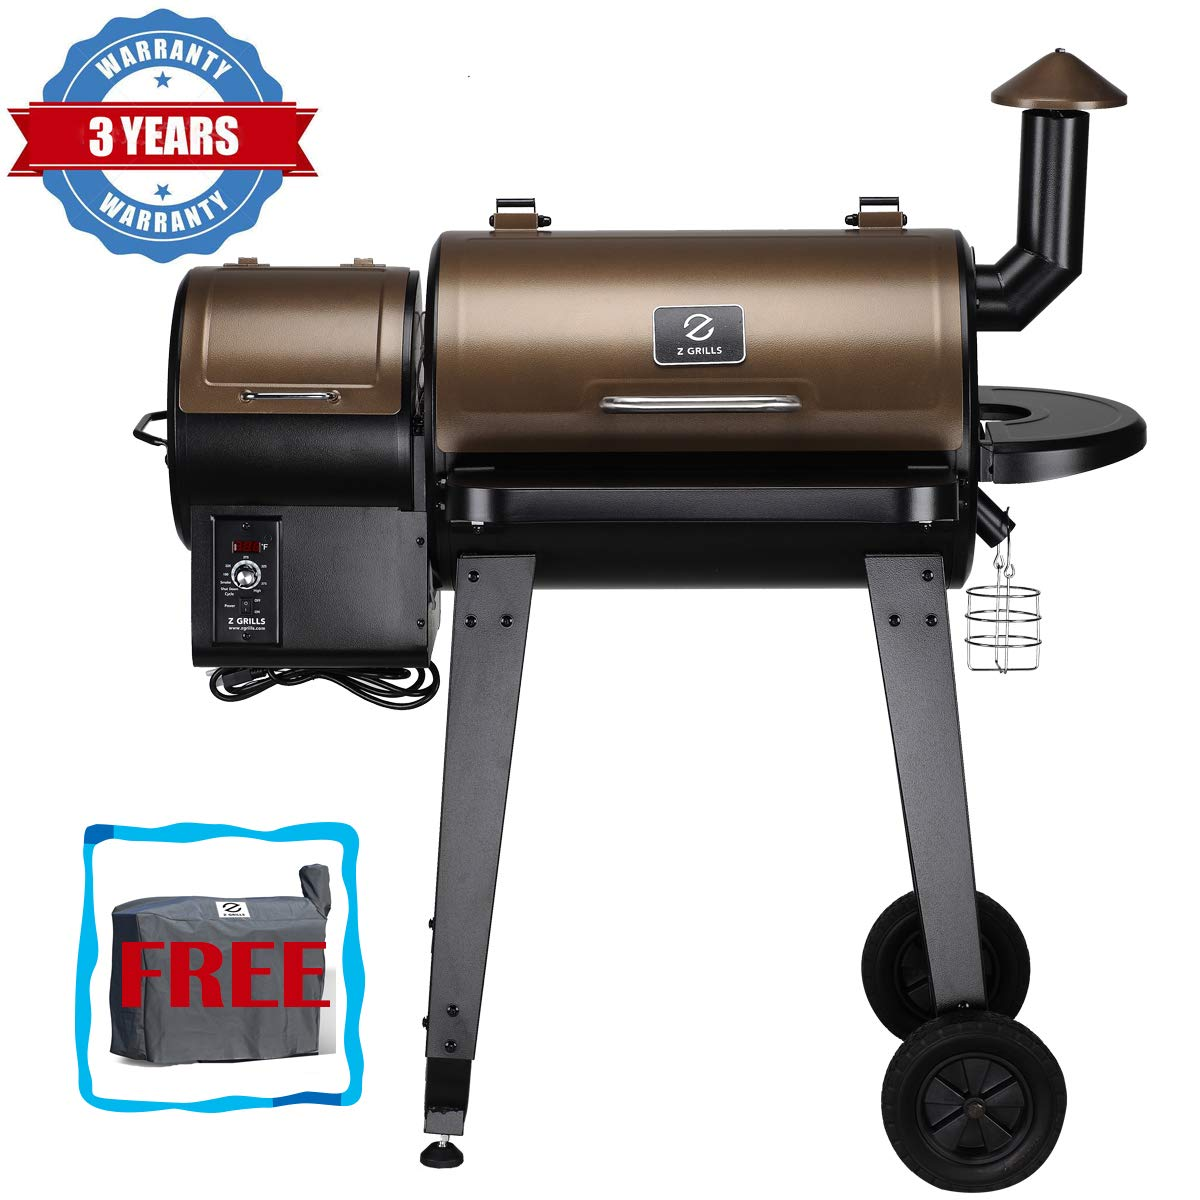 Z GRILLS Wood Pellet Grill and Smoker Ourdoor with Update Pid Controller 8-in-1 Outdoor Smoker Cover Included